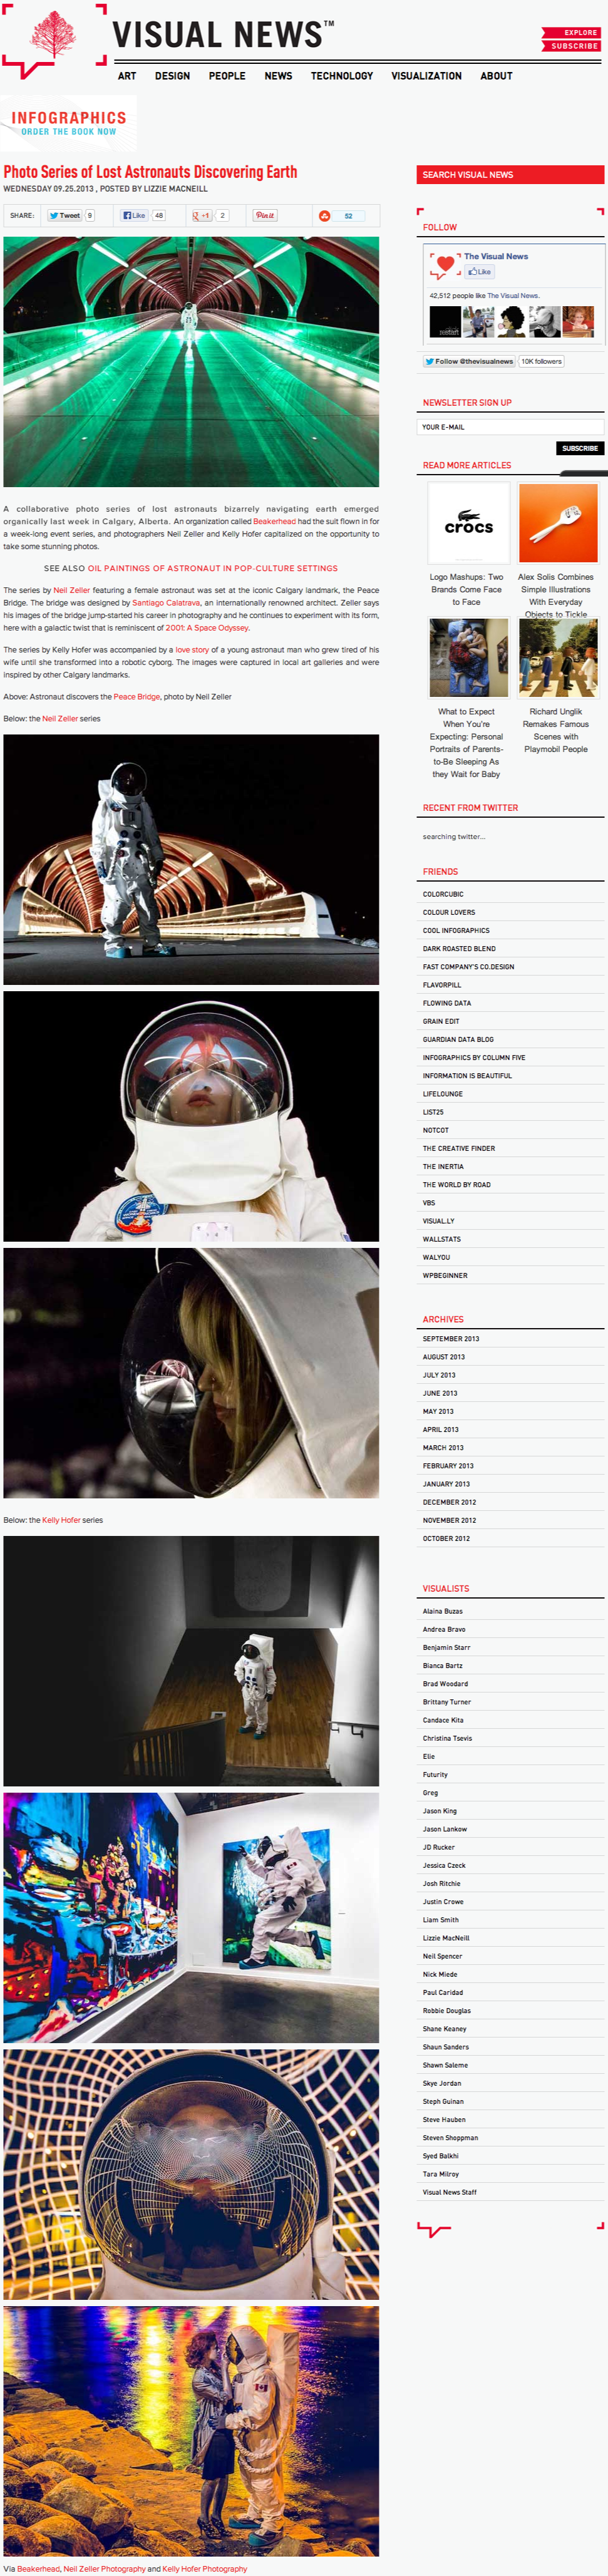 Photo Series of Lost Astronauts Discovering Earth.png